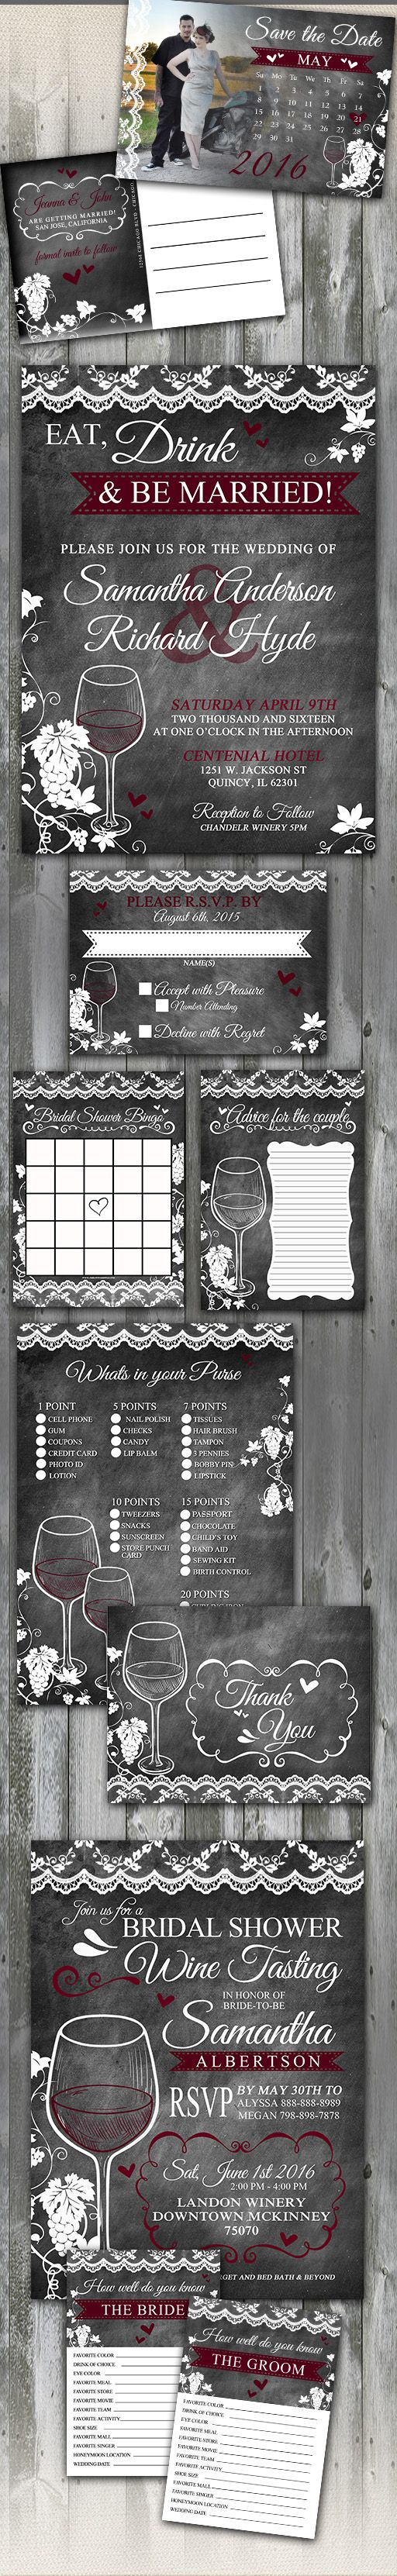 Rustic Chalkboard and lace Wine Wedding Stationery Set. This winery or vineyard wedding theme features lace and wine elements. Colors can be changed upon request.